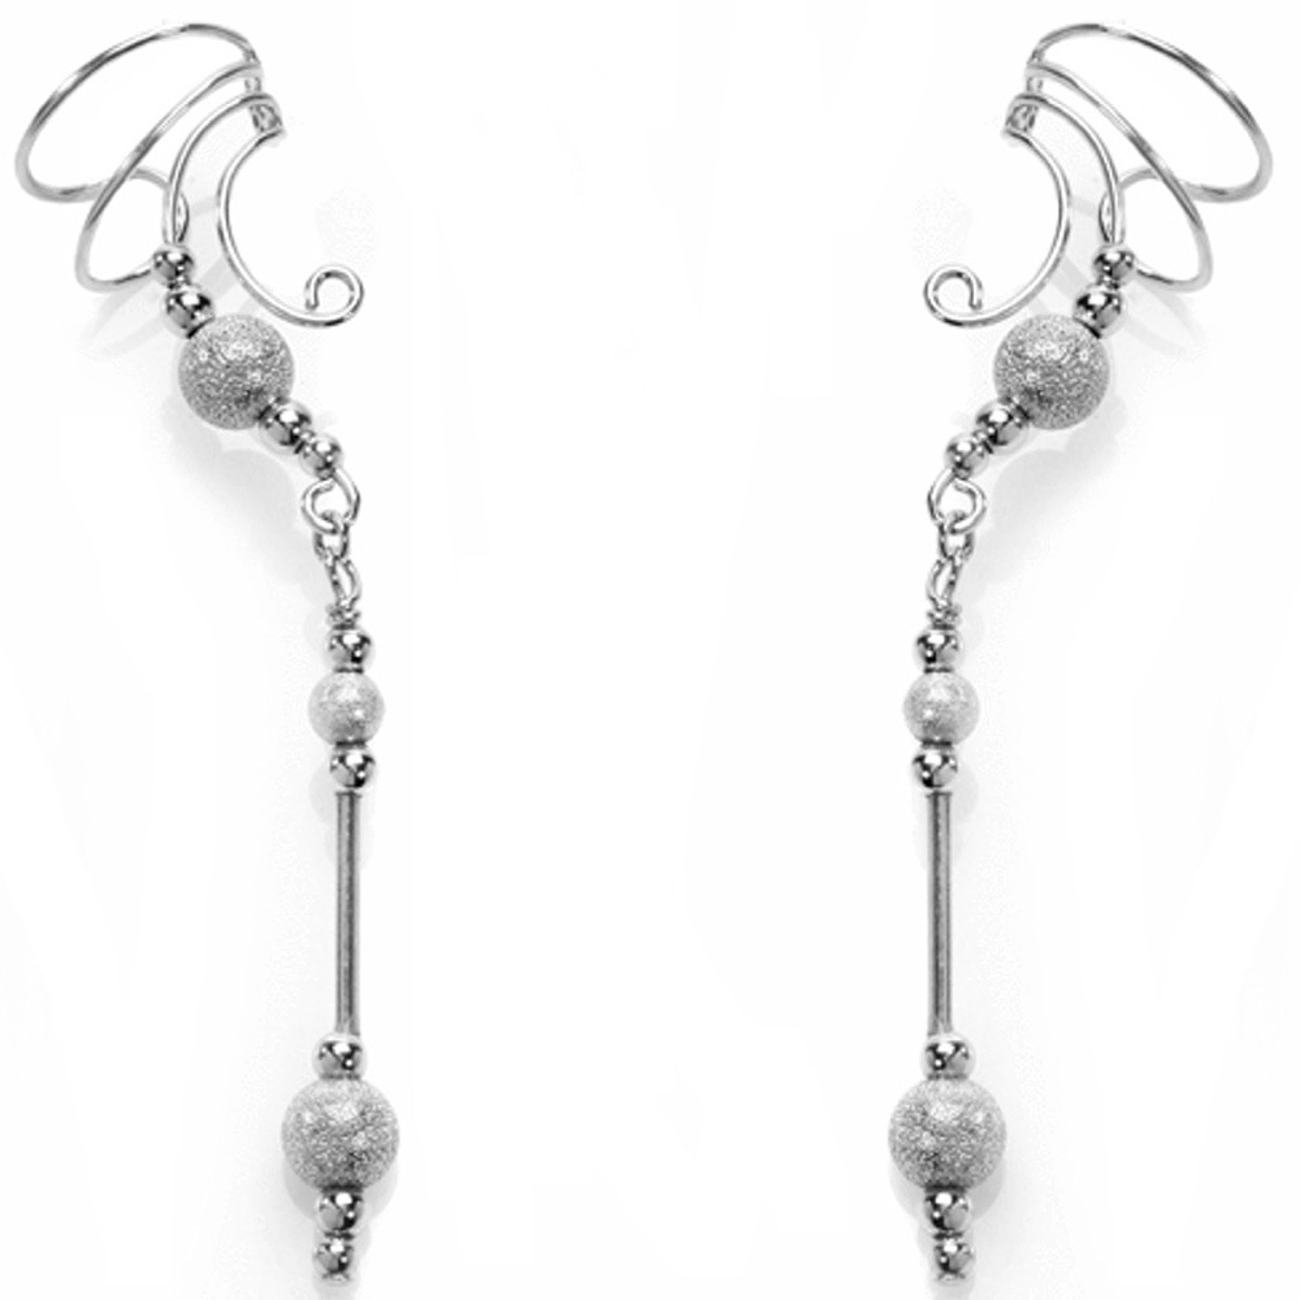 Right Only Pierceless Long Dangle Starbust Beads Ear Cuff